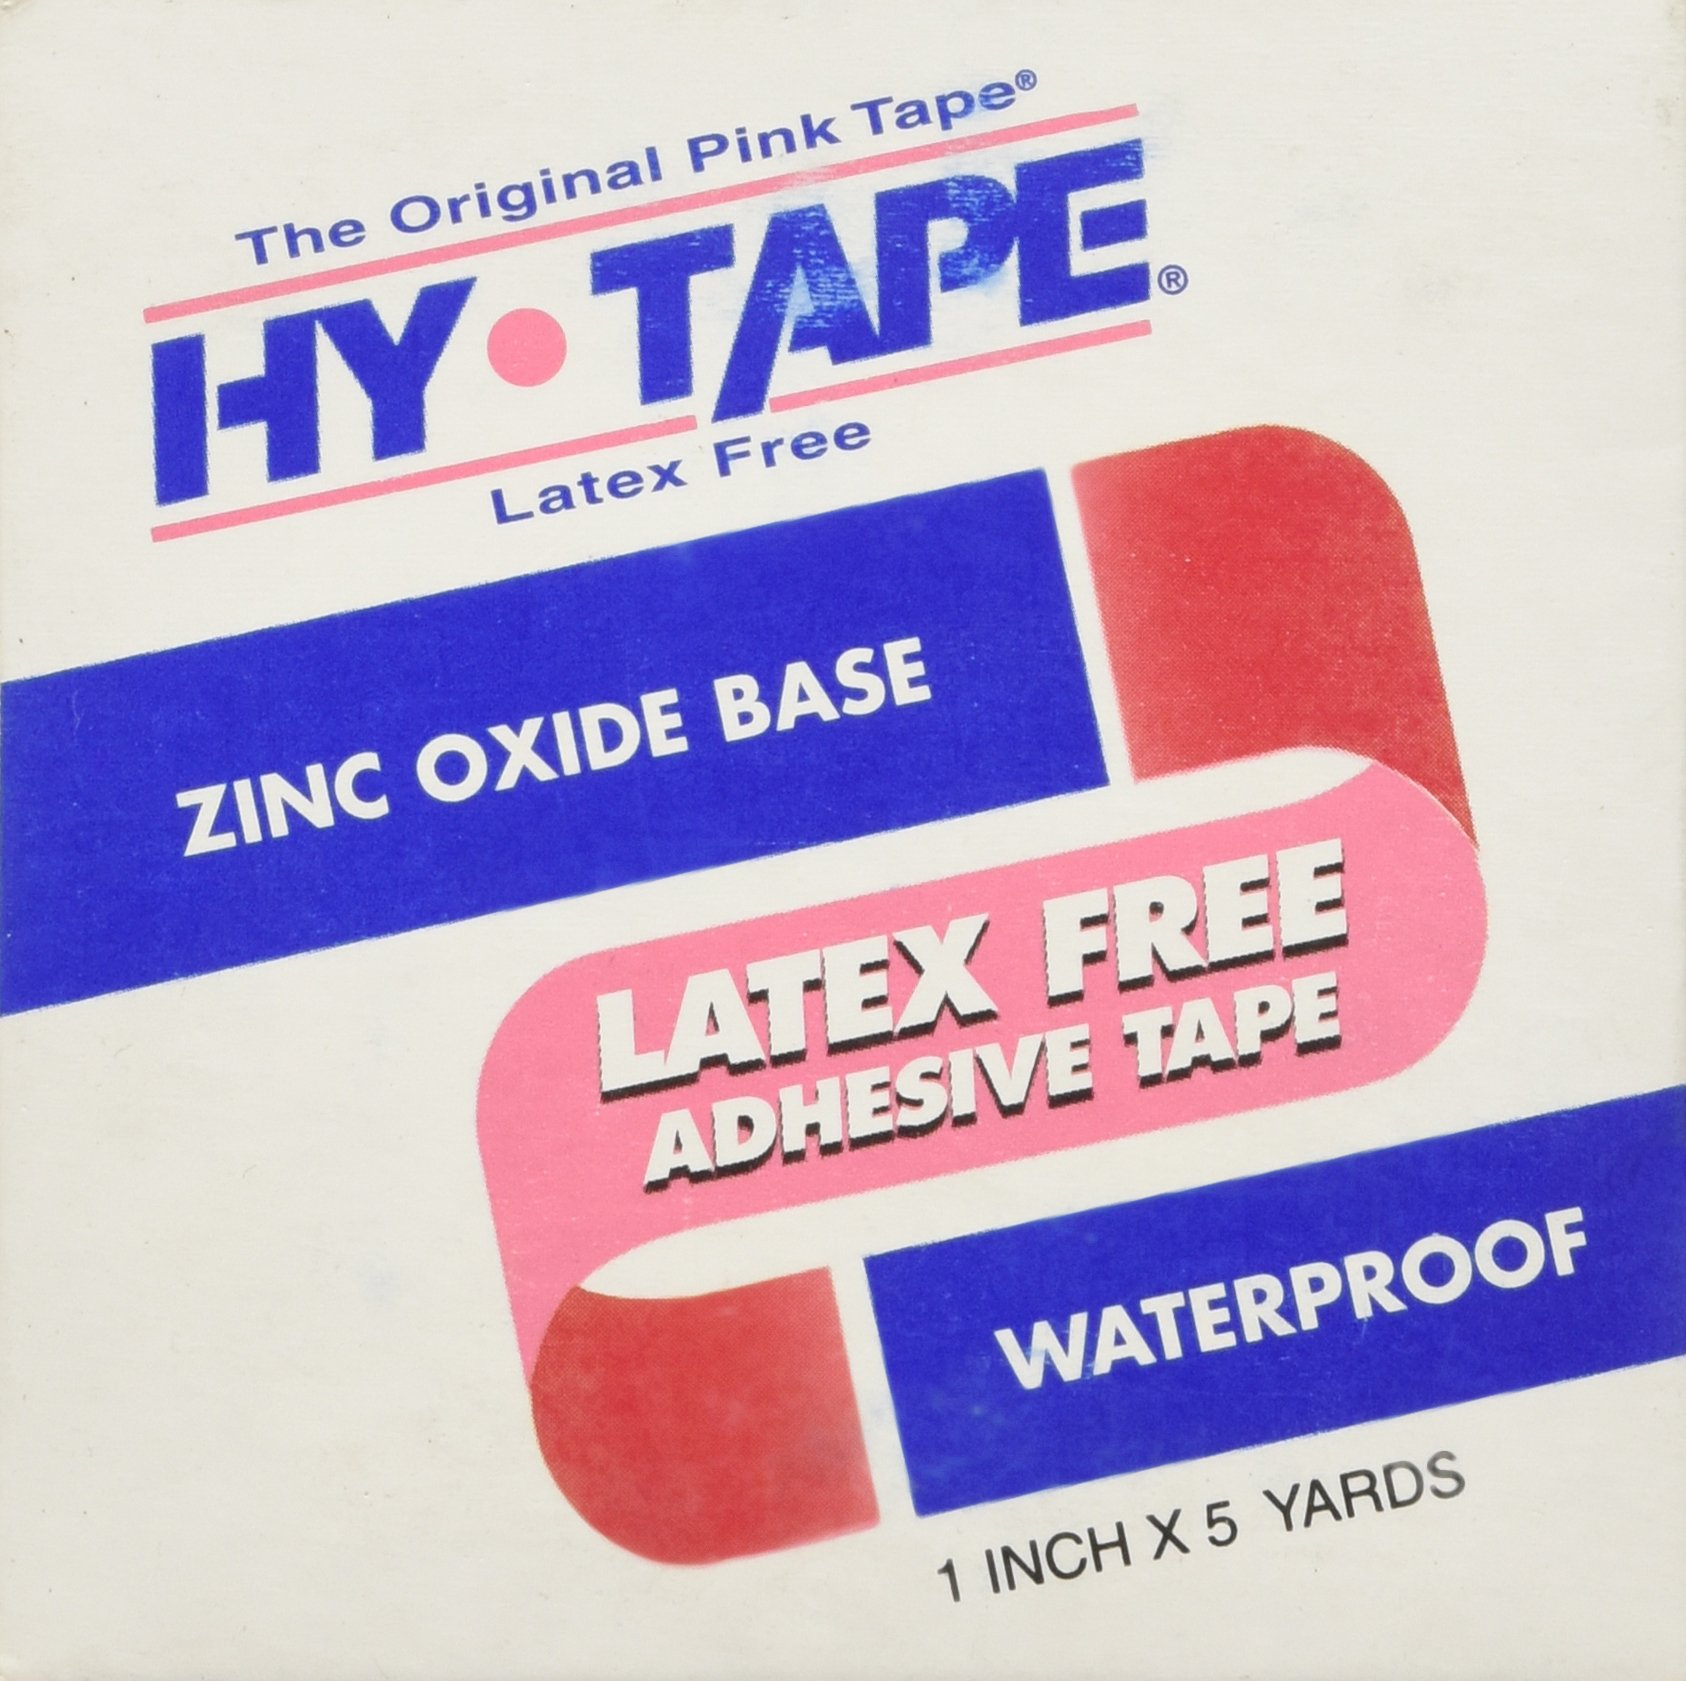 HY-TAPE The Original Pink Tape, 1 in. x 5 yds - Each.